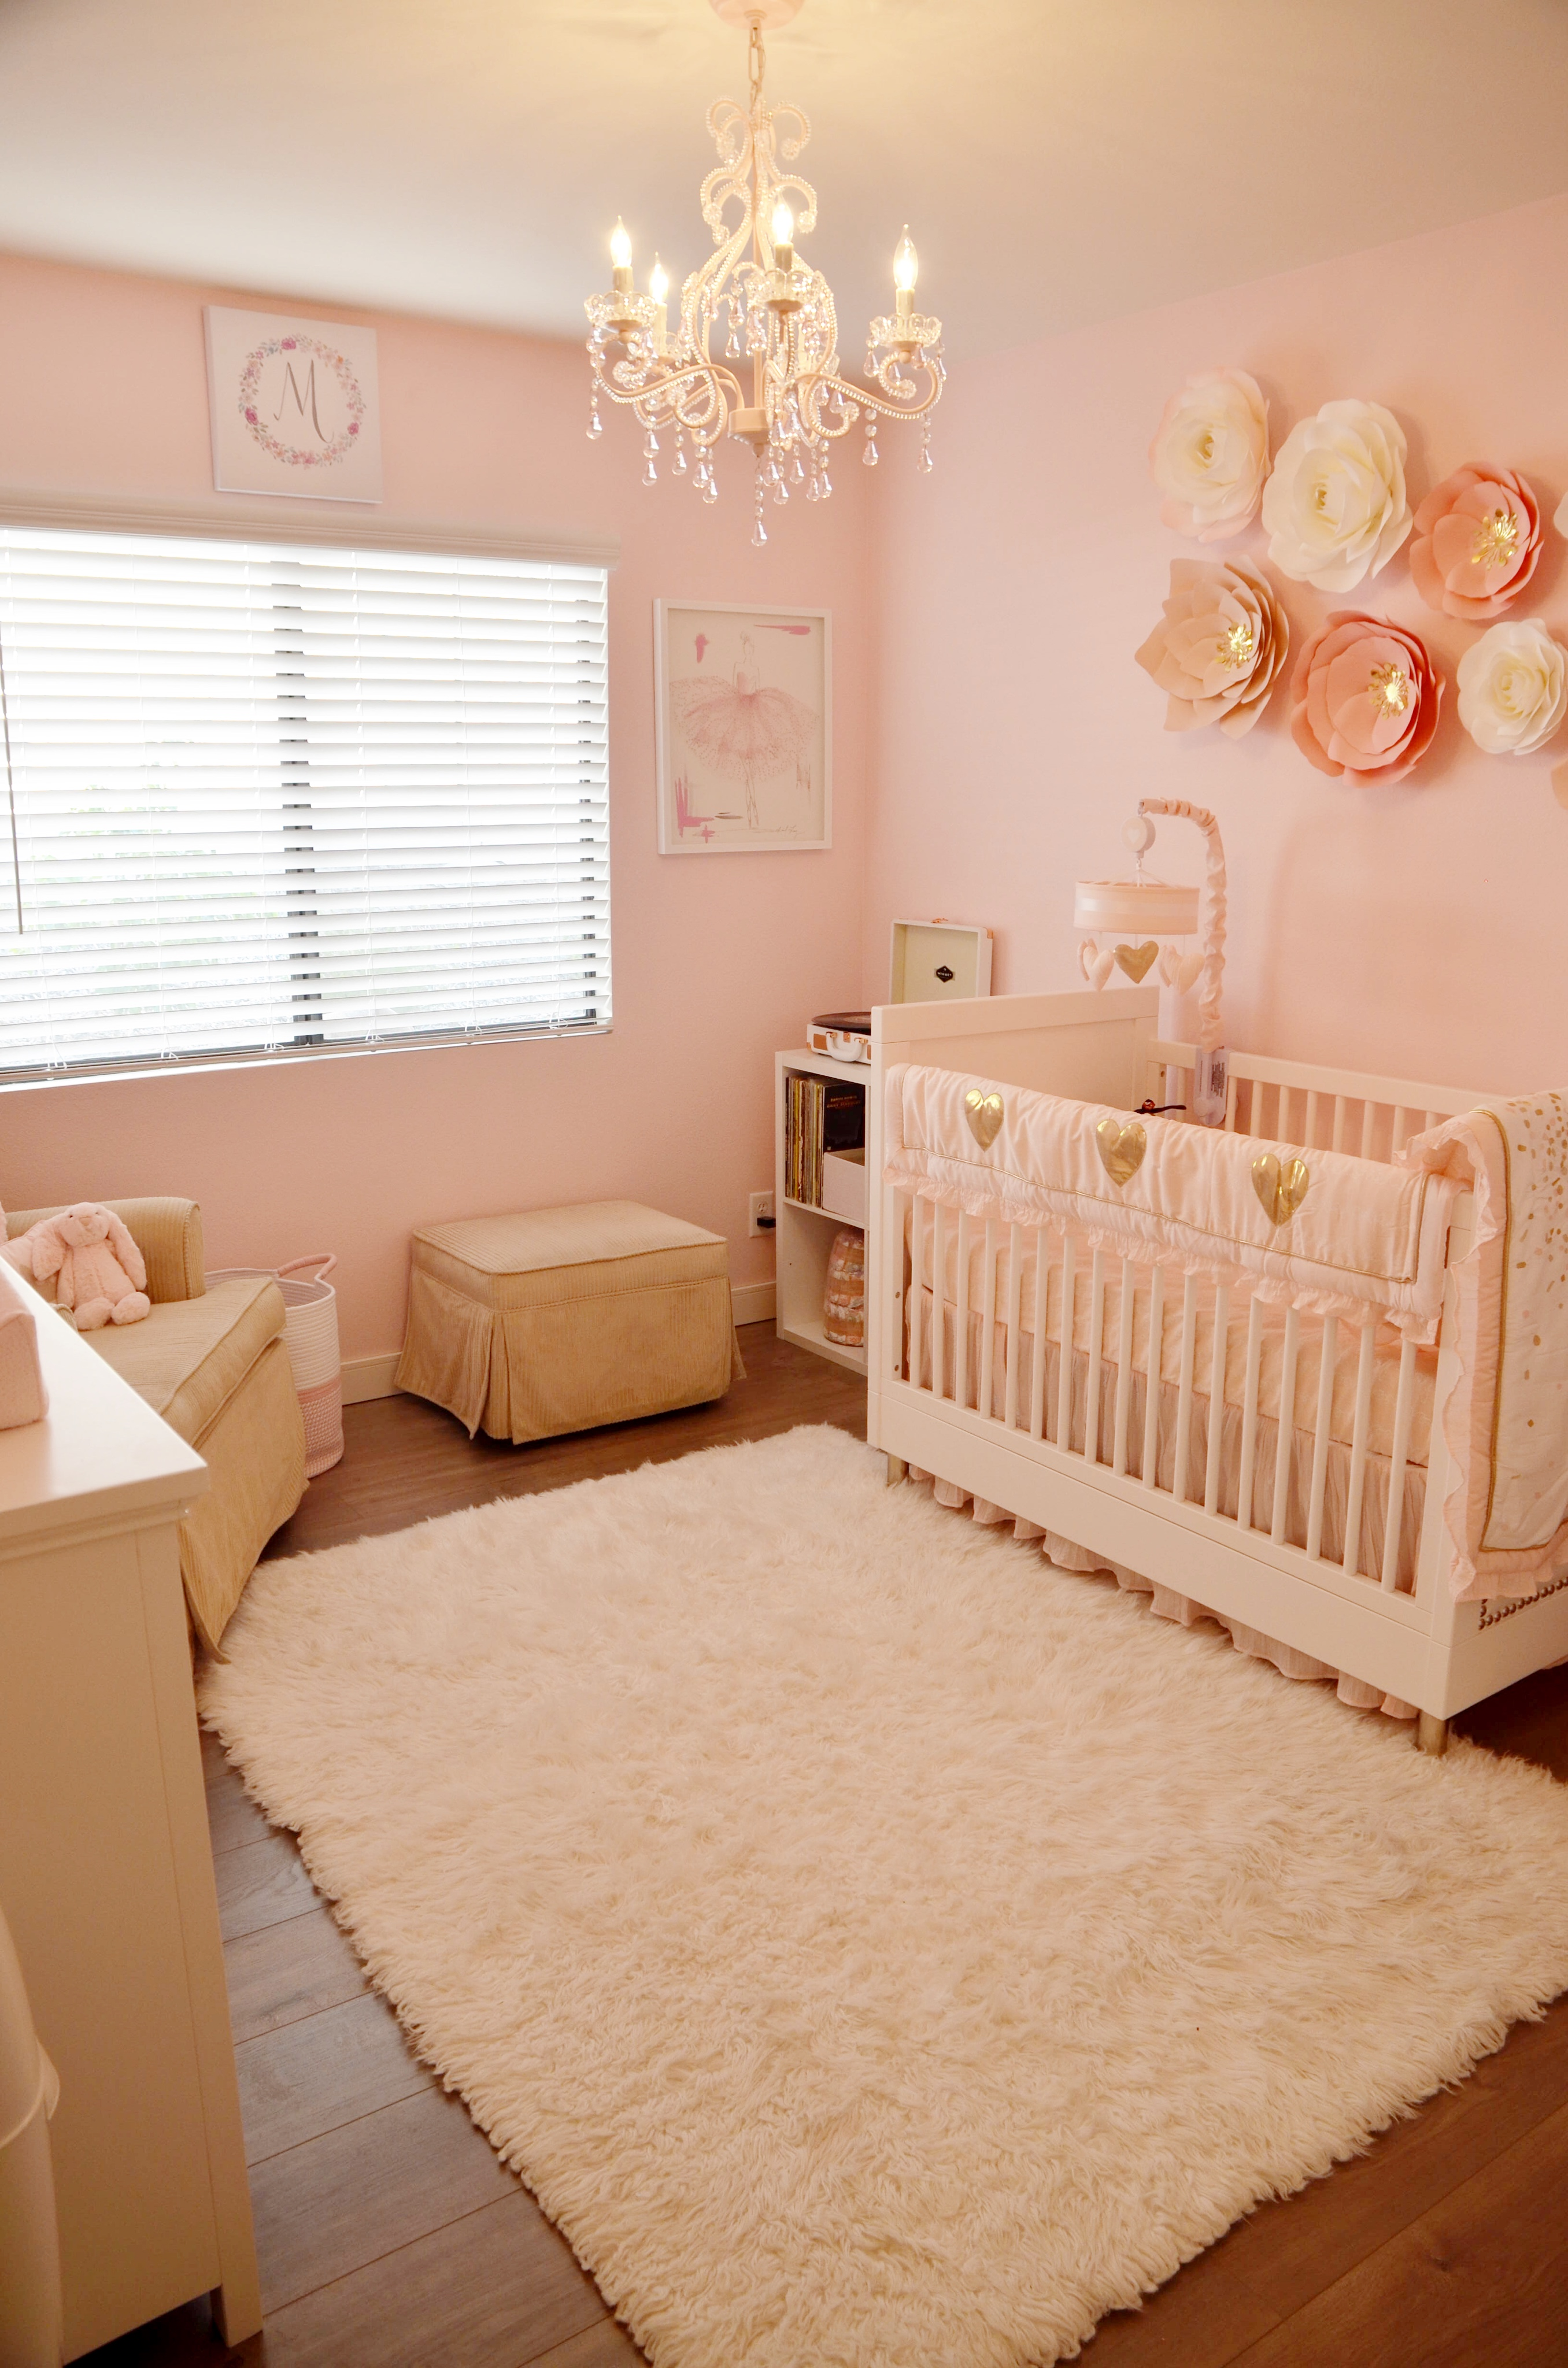 e58acd91e54 Baby Room Makeover x Amber Nicole Fashion - Amber Nicole Fashion